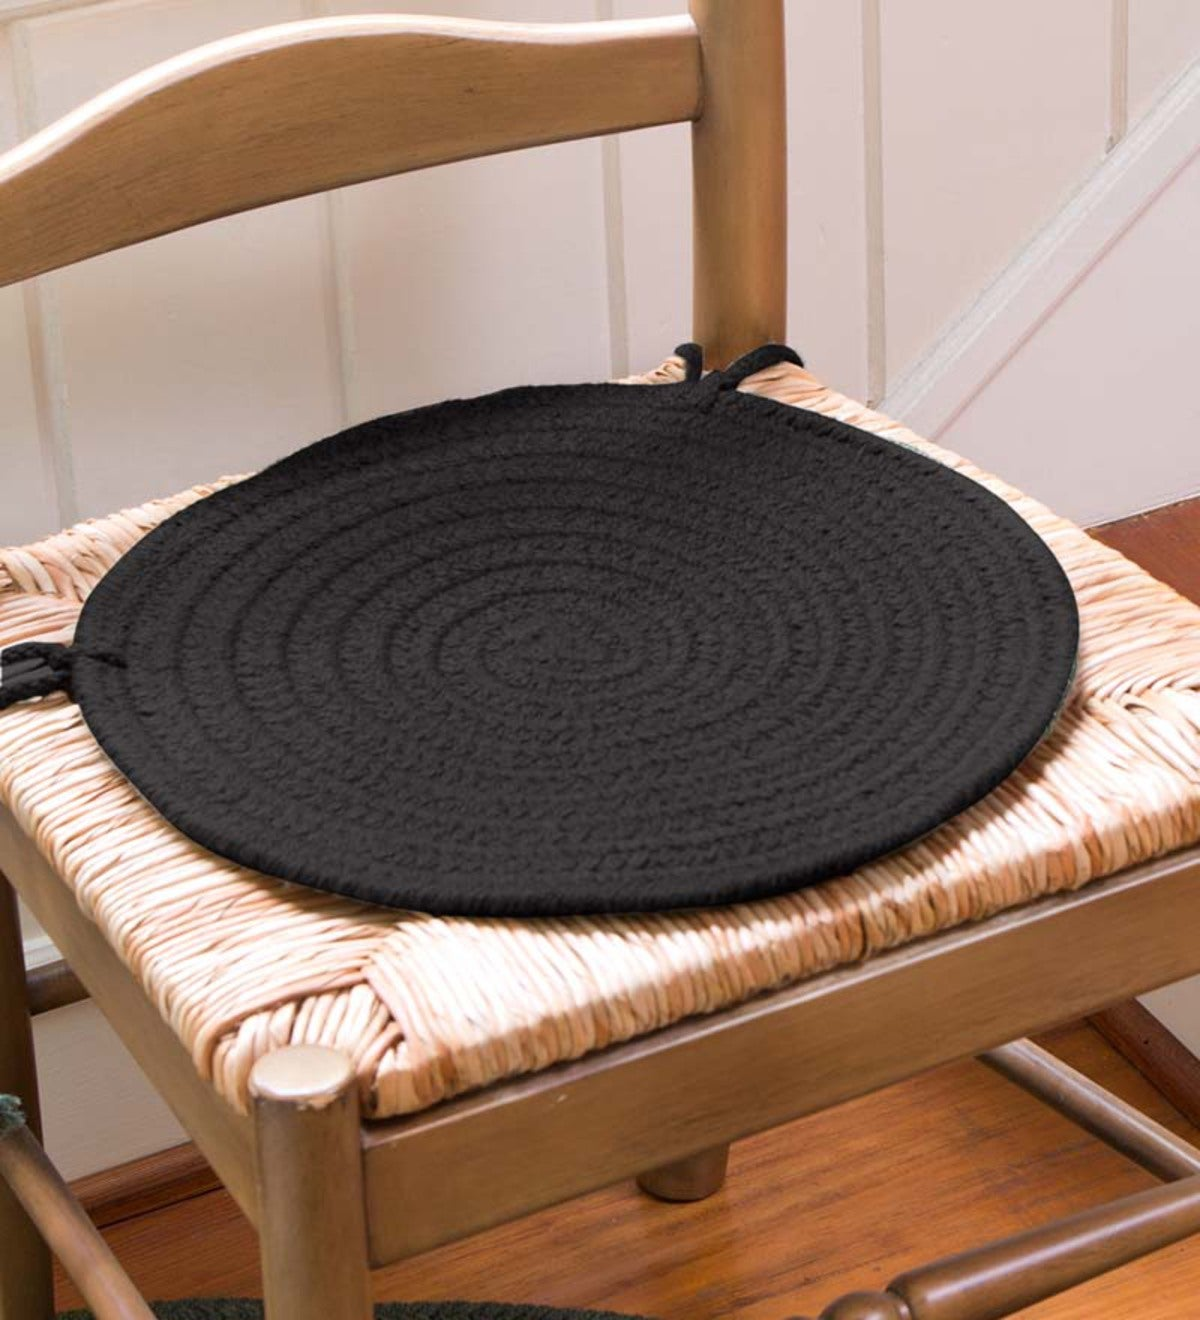 "Solid Color Country Classic Braided Polypropylene Chair Pad, 15"" dia. - Black"